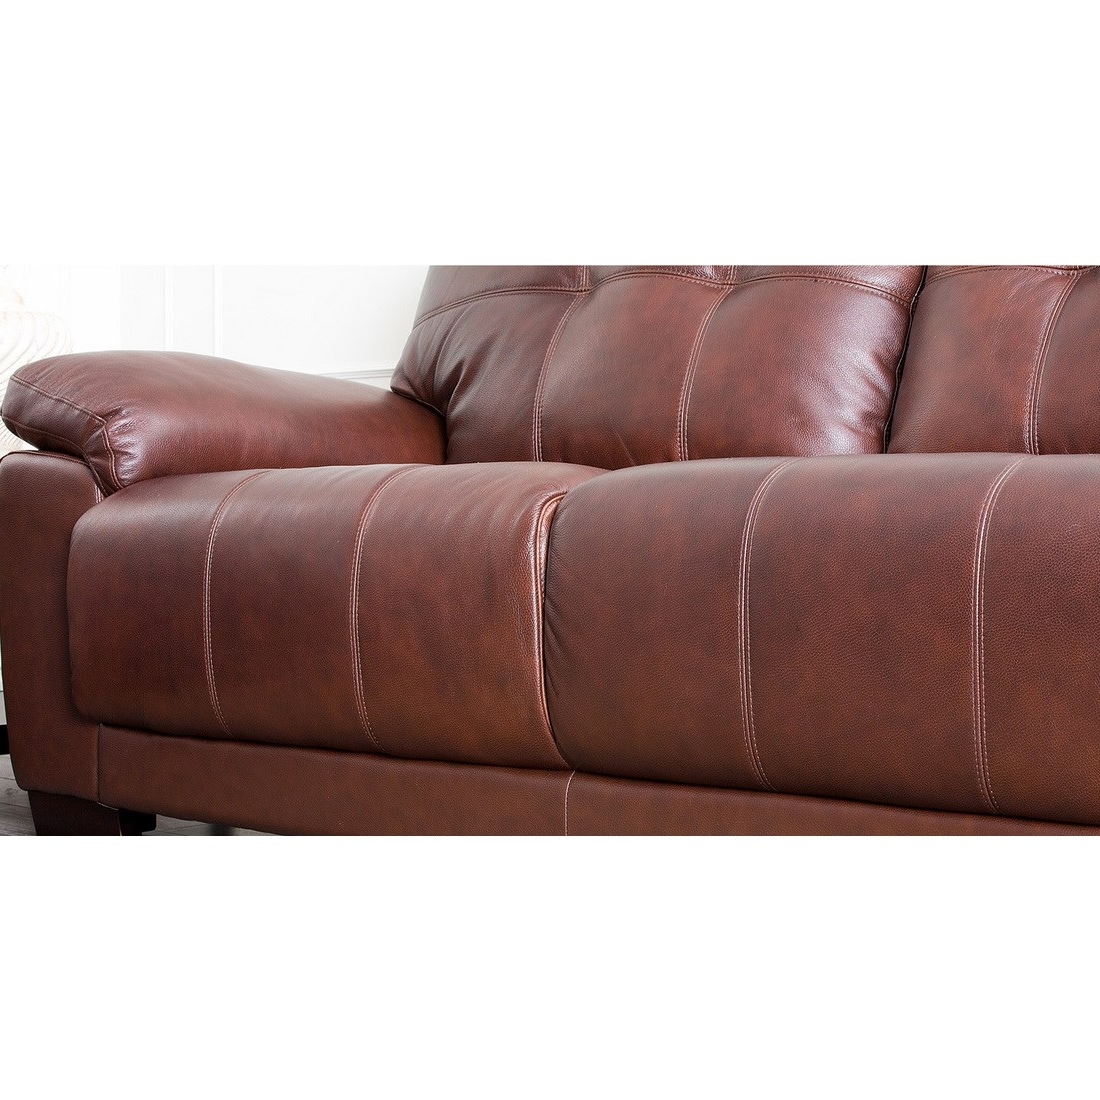 Florence Leather Sofas Intended For Most Popular Abbyson Living Sf 5902 Cst 3 Florence Two Tone Brown Leather Sofa (View 4 of 15)